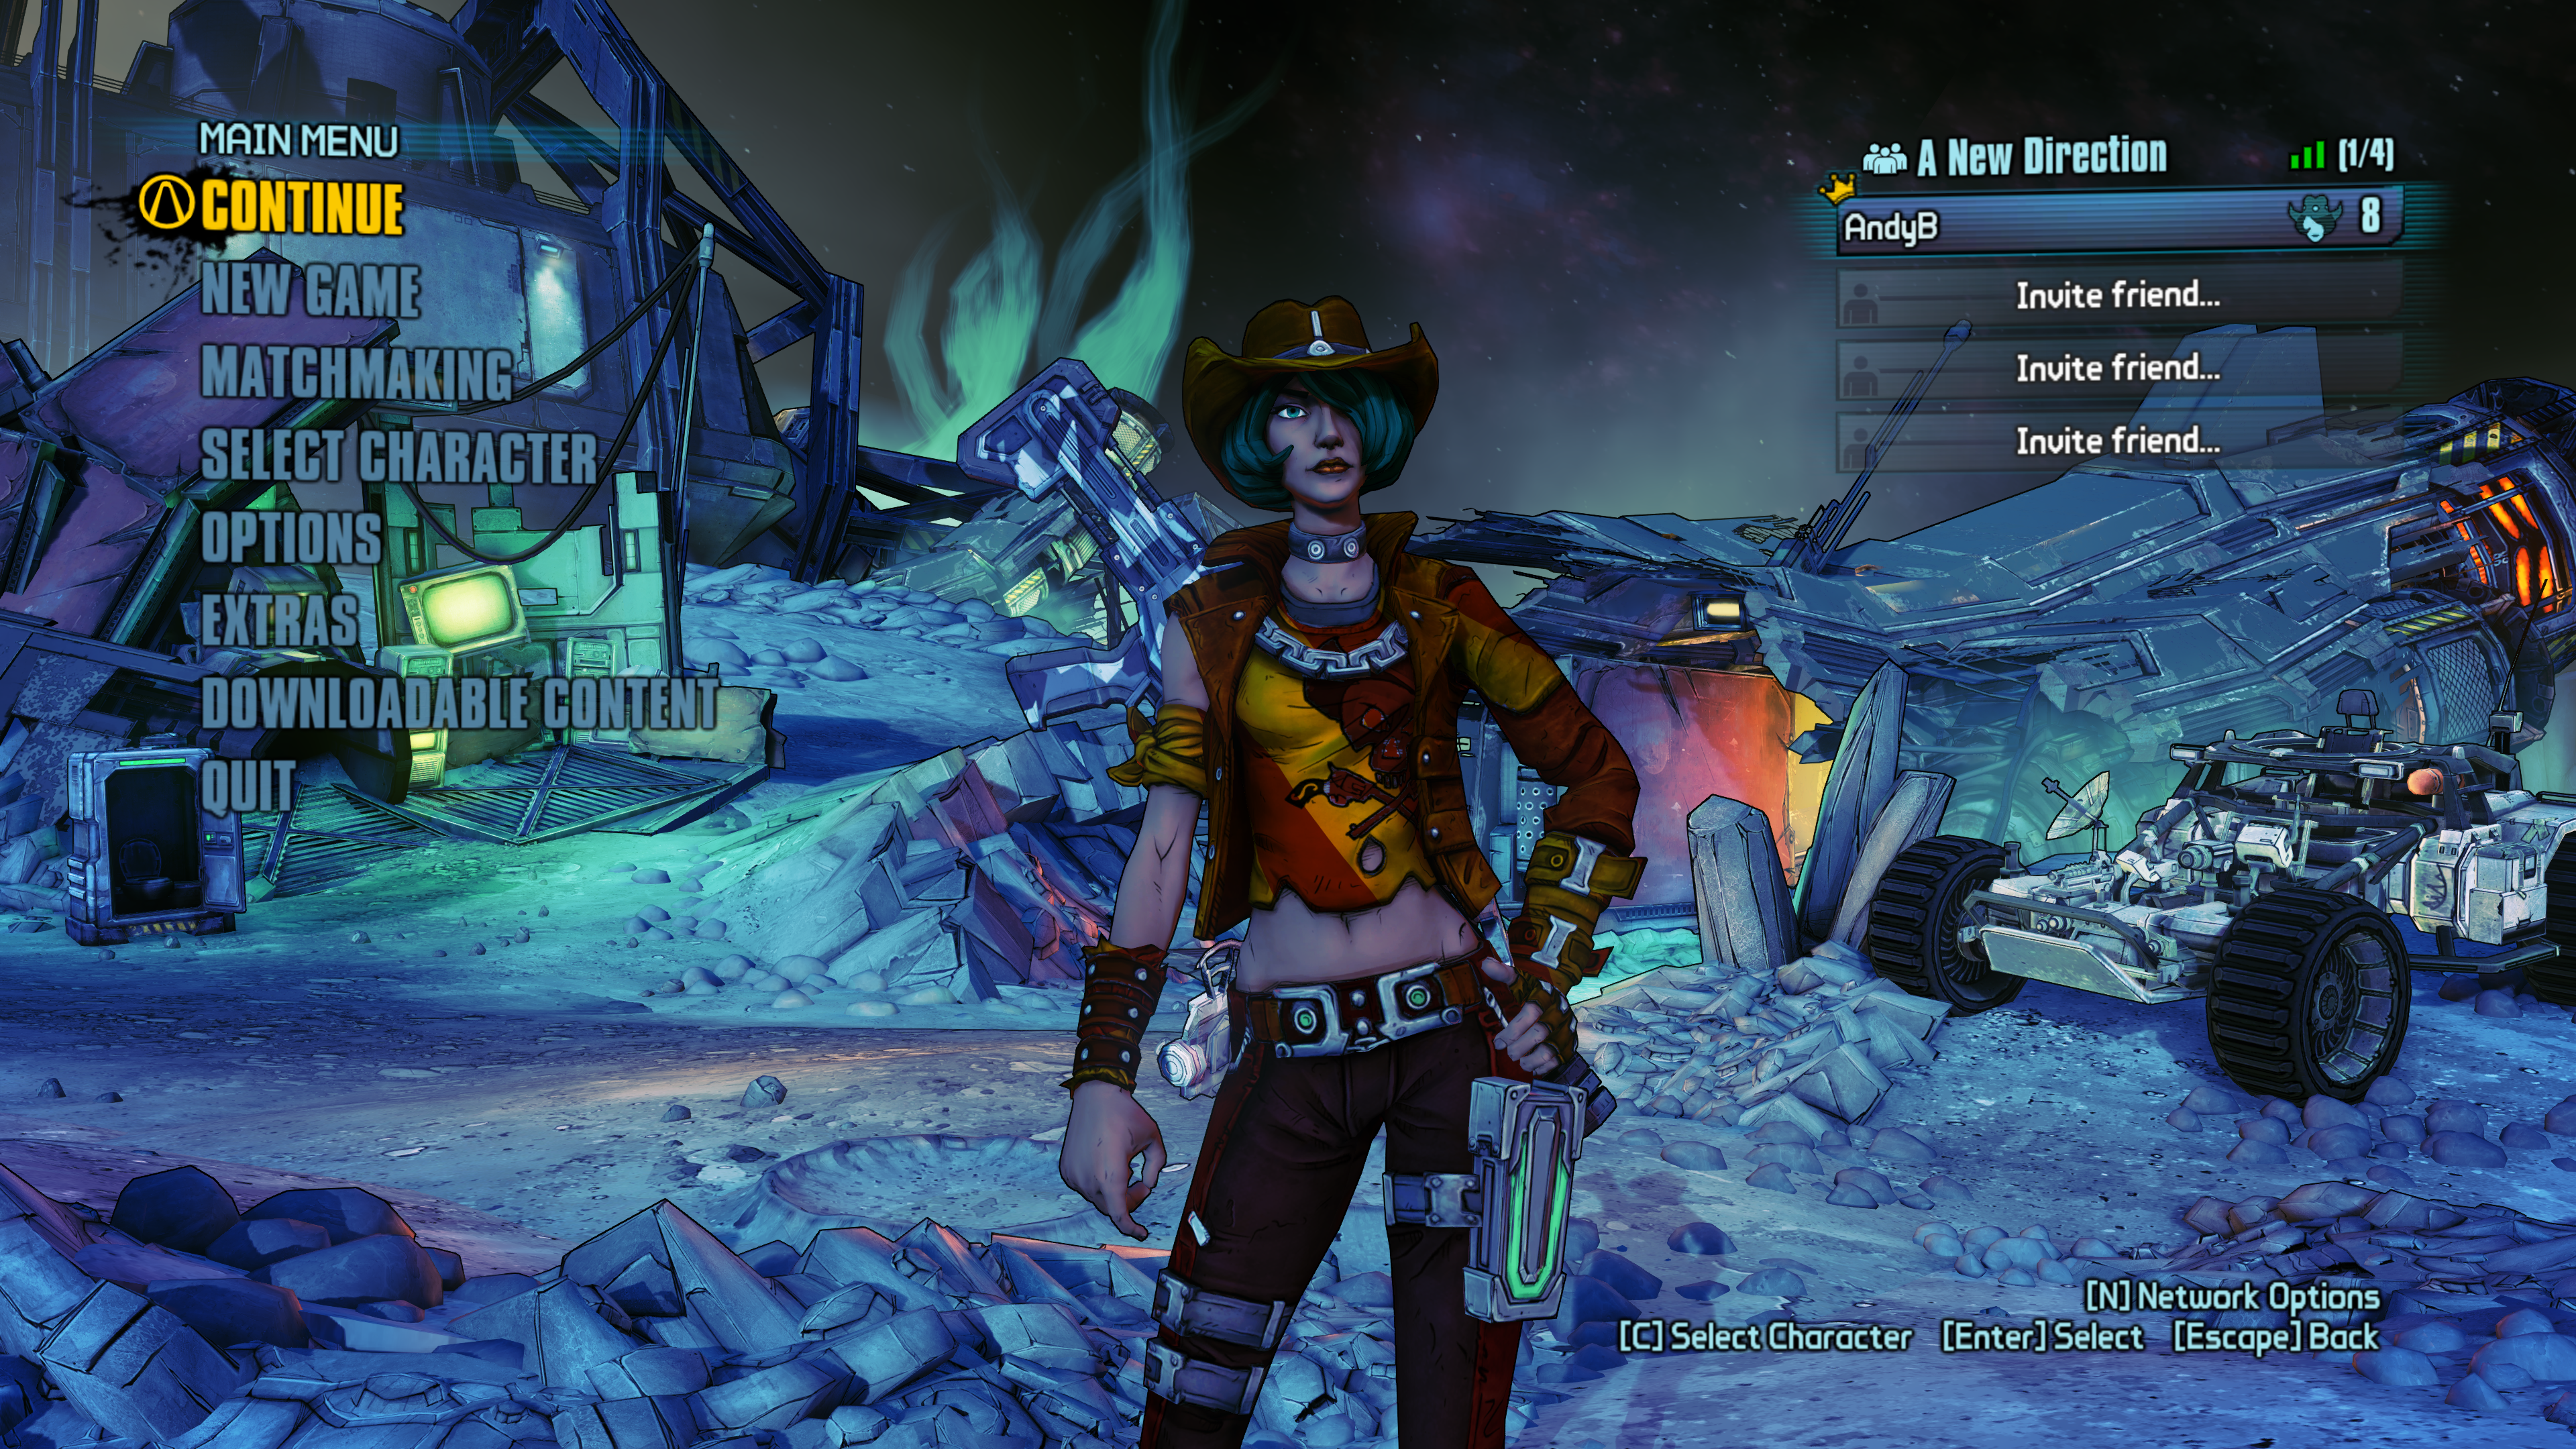 Borderlands 2 matchmaking higher levels